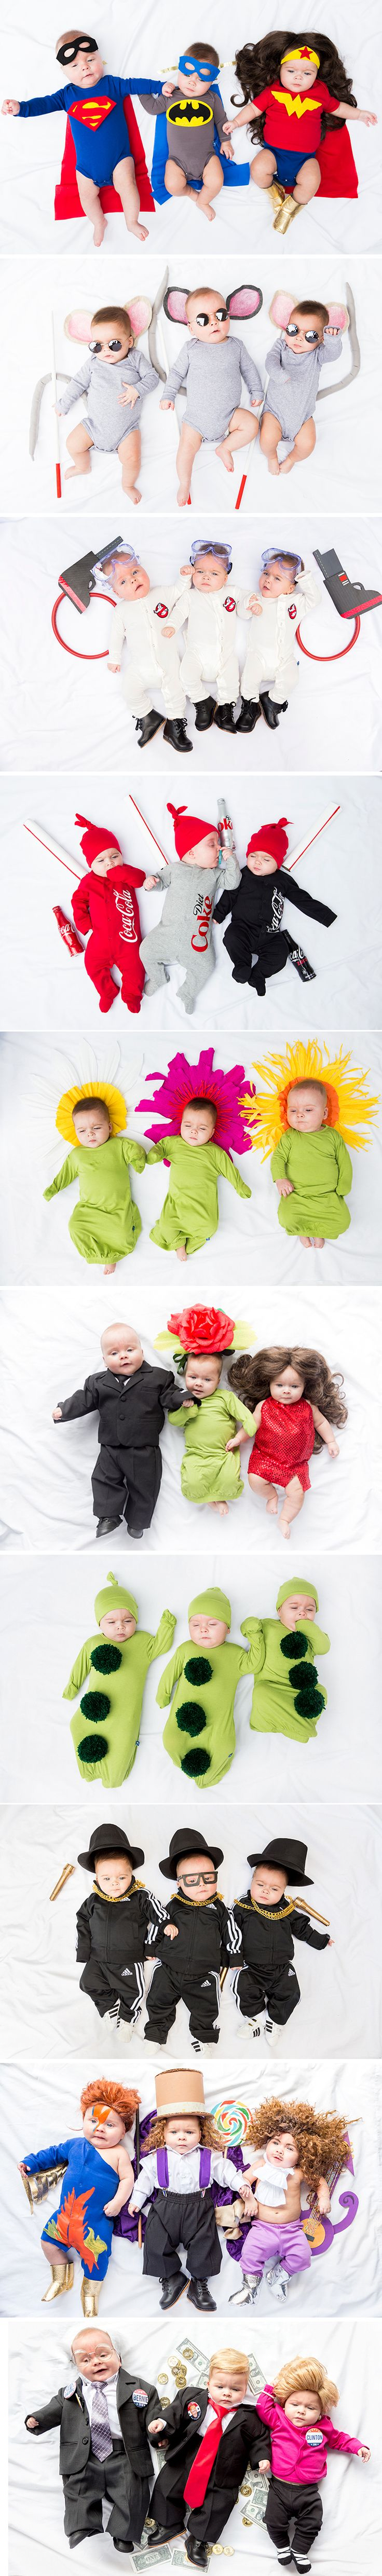 Triplets baby costumes for Halloween